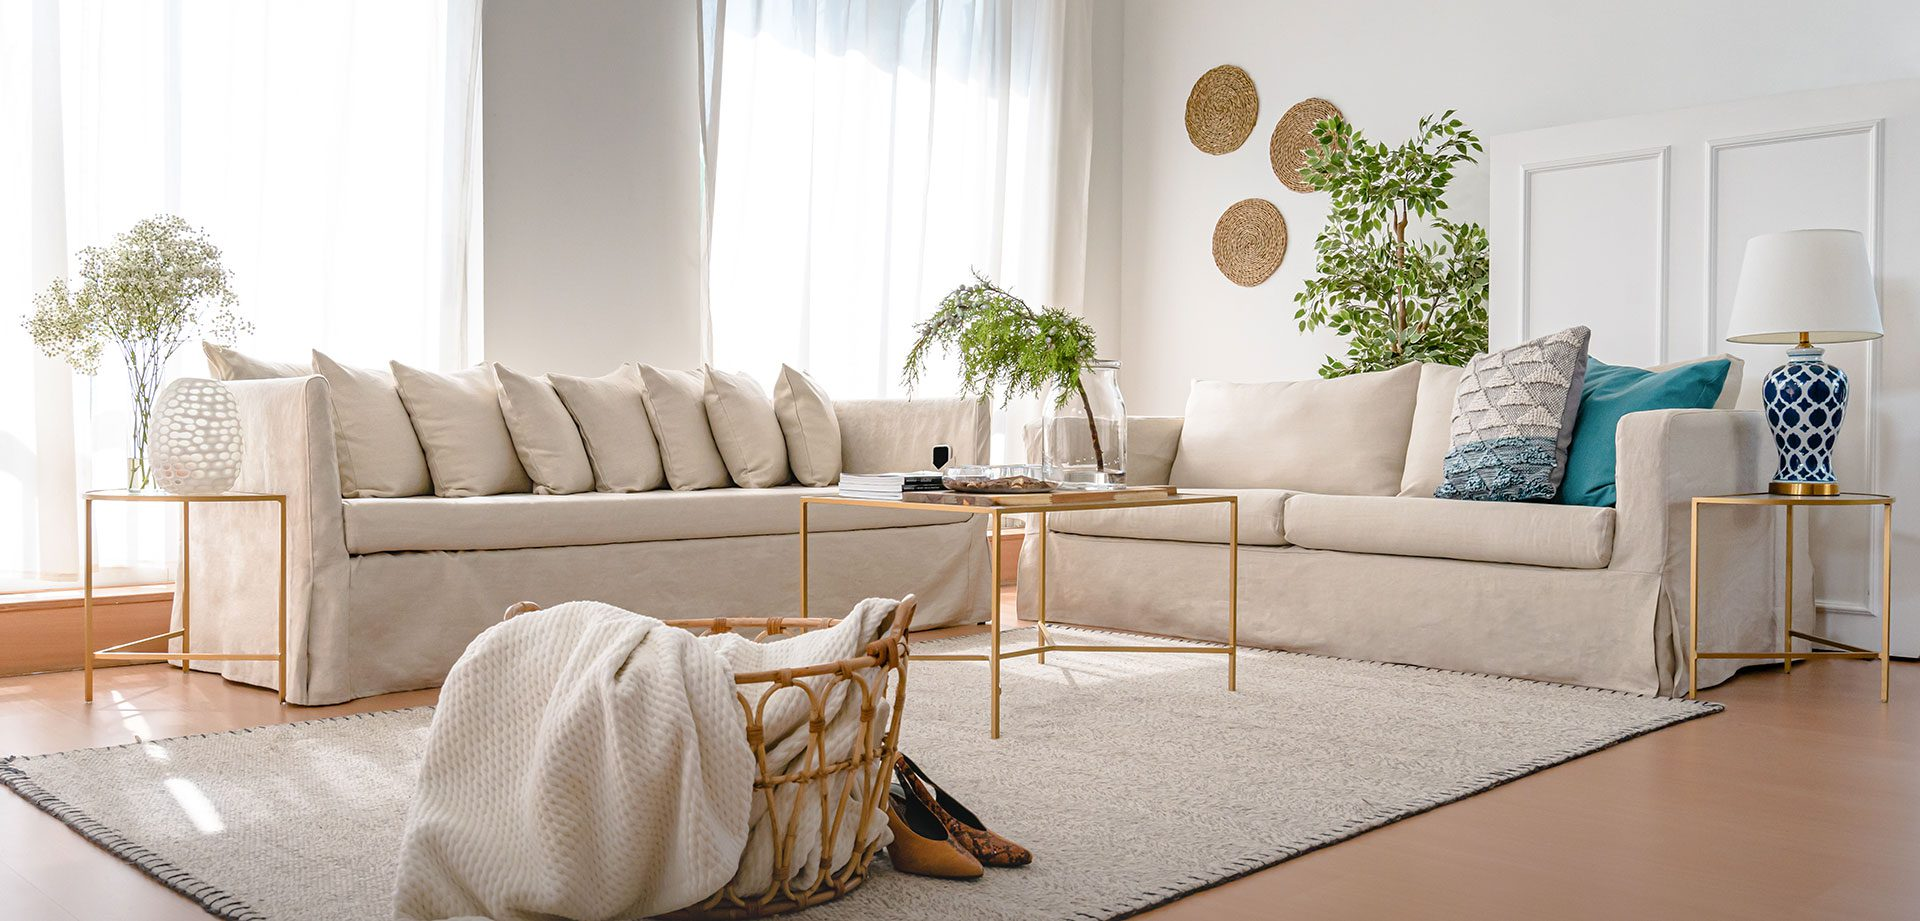 20 2020 Living Room Decorations For A Fresh Start